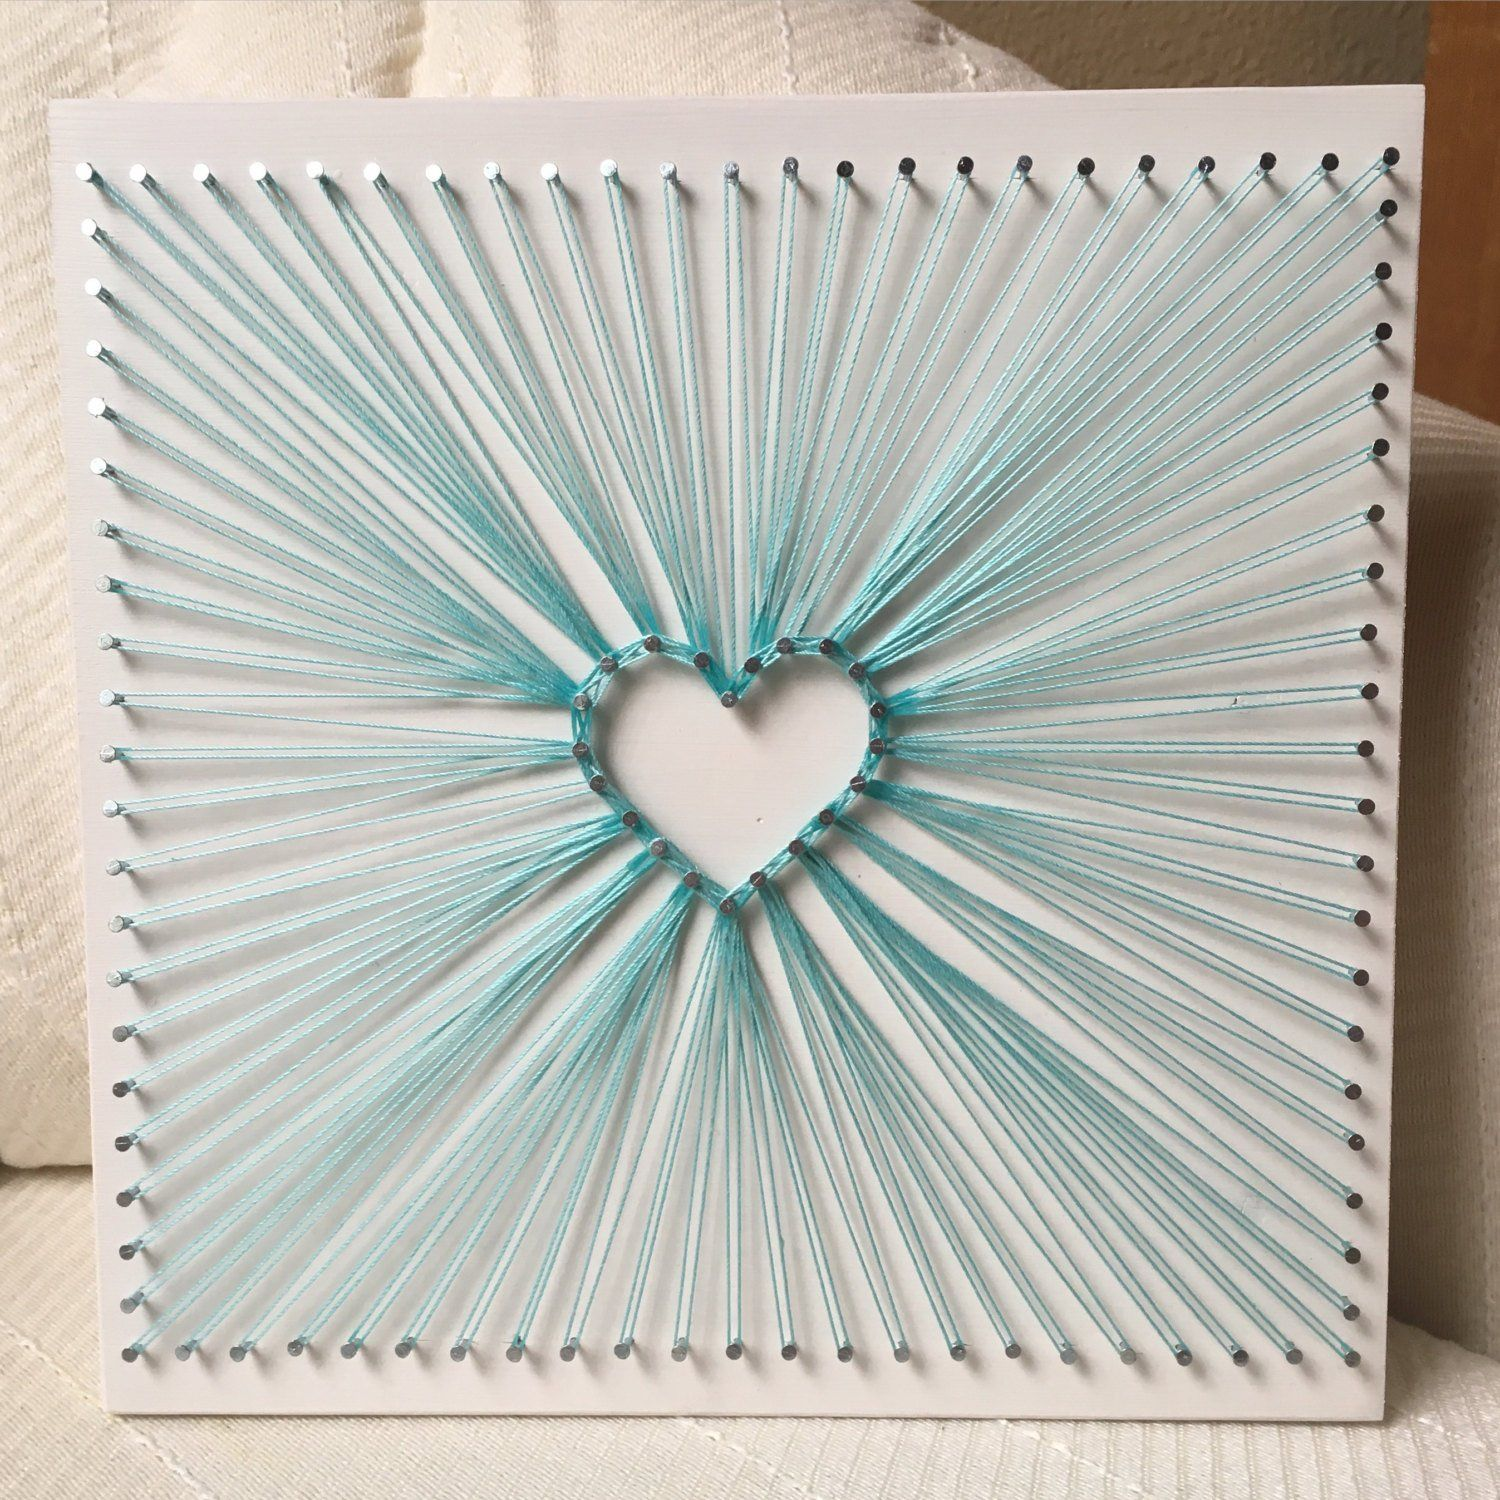 MADE TO ORDER - Herz Burst String Art, Liebe Wandkunst, Home Decor, Valentinstag, Weihnachtsgeschenk, Weihnachtsgeschenk, Muttertag, einzigartig